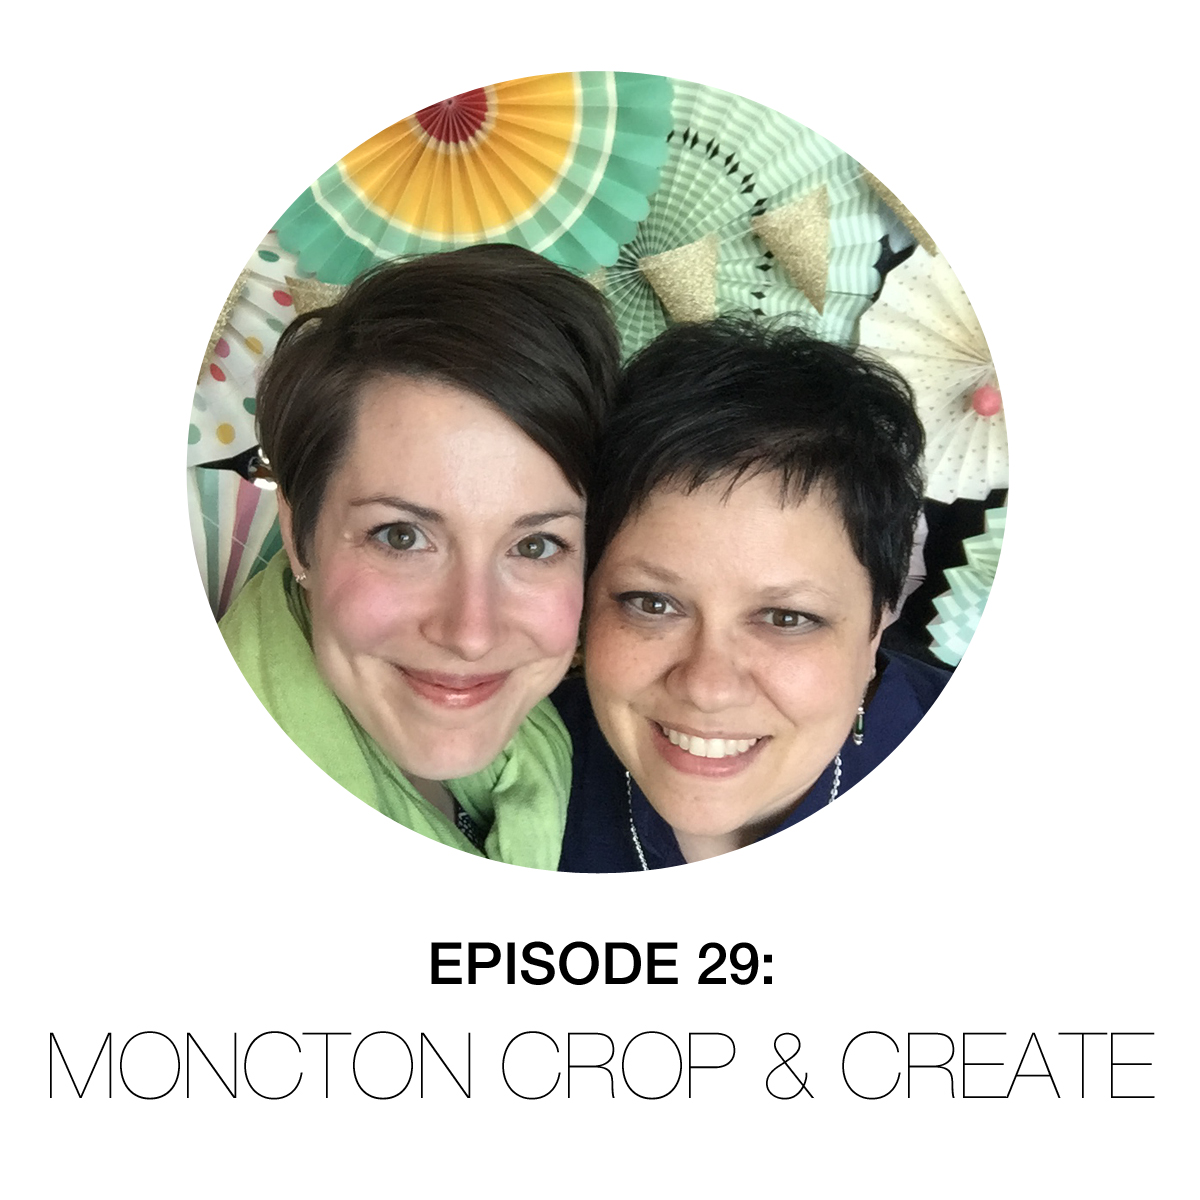 Episode 29: Moncton Crop & Create